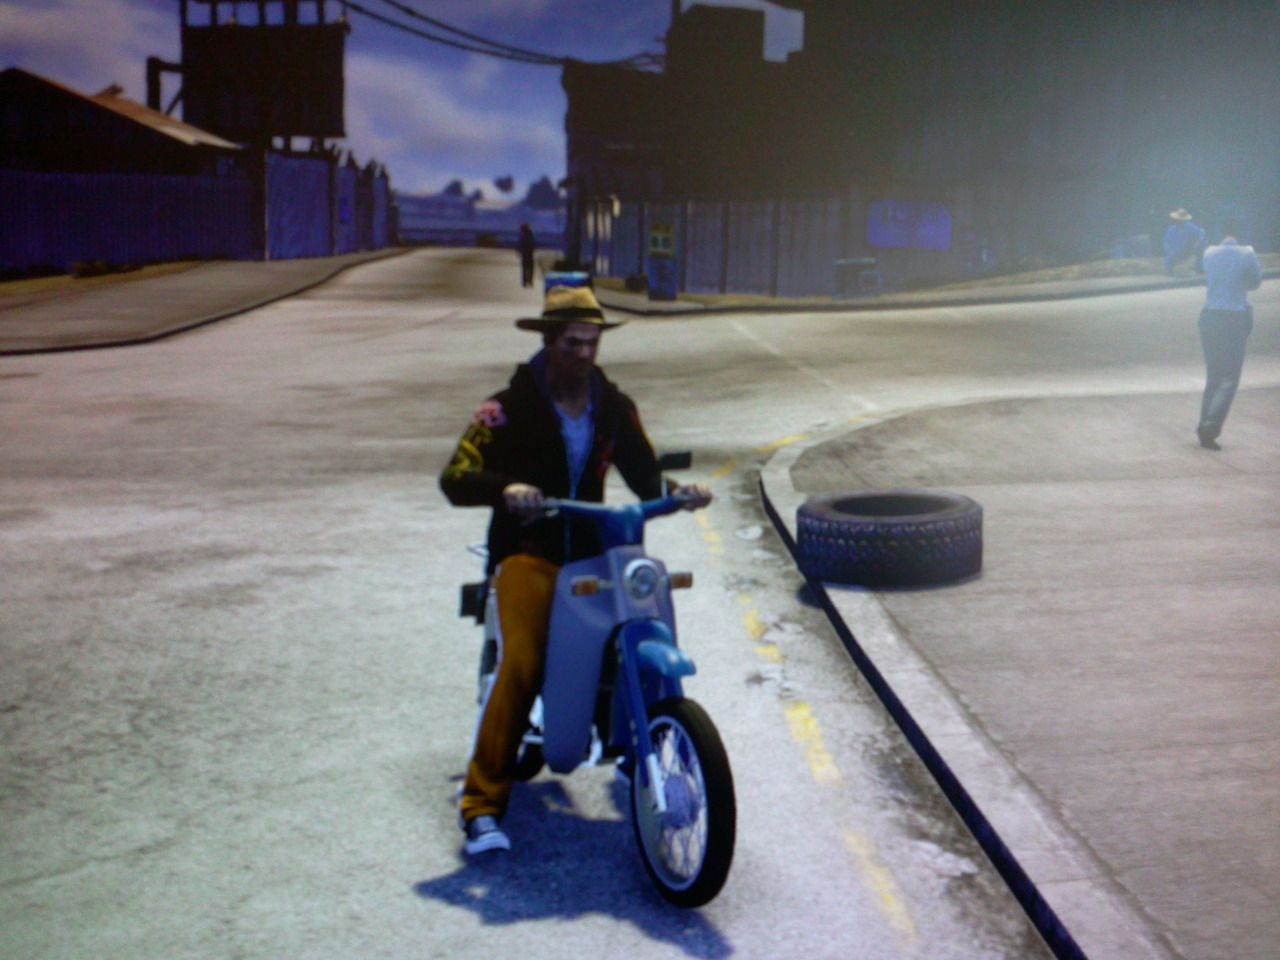 Yes, that is my criminal outfit and coppers loose sight of me each time